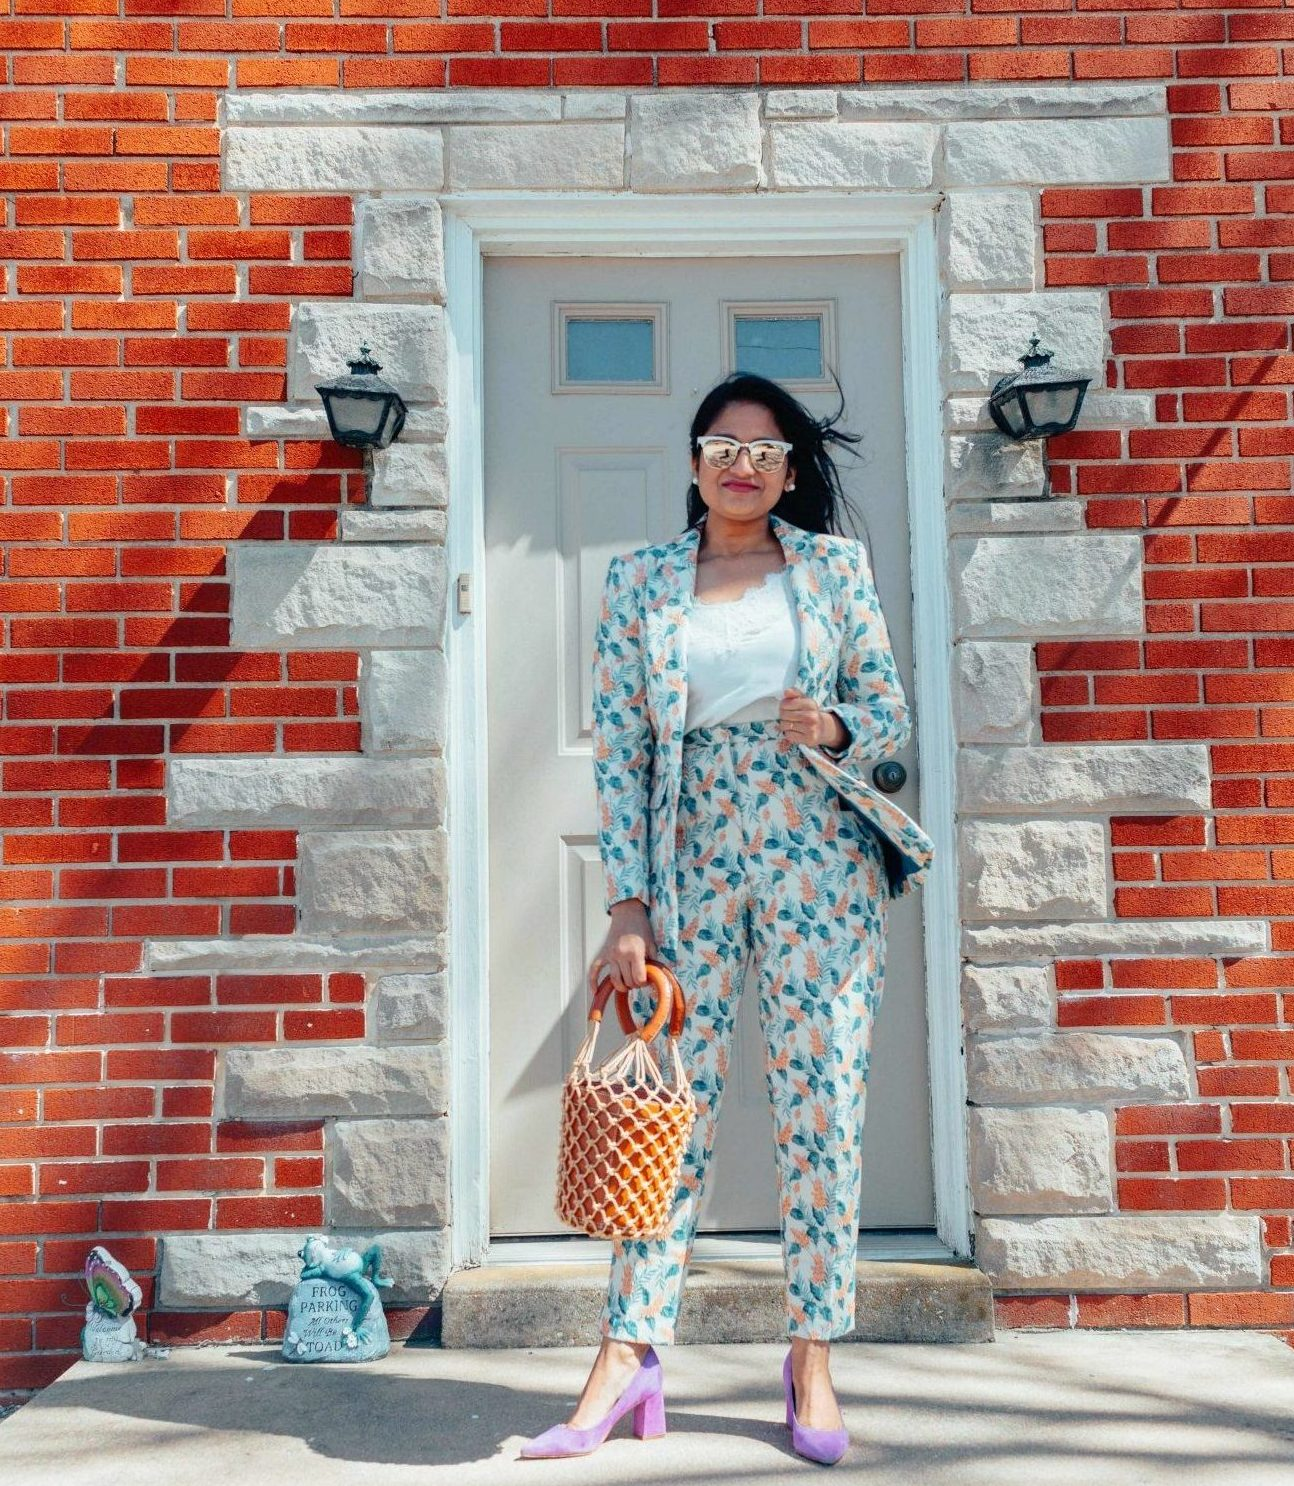 How to wear jacquard wisteria floral blazer two-piece set | Modest Spring outfits featured by top US fashion blog, Dreaming Loud: image of a woman wearing an ASOS floral pant suit, Abercrombie and Fitch lace cami, STAUD bag, Marc Fisher pumps and Ray ban aviator sunglasses | Modest Spring outfits featured by top US fashion blog, Dreaming Loud: image of a woman wearing an ASOS floral pant suit, Abercrombie and Fitch lace cami, STAUD bag, Marc Fisher pumps and Ray ban aviator sunglasses